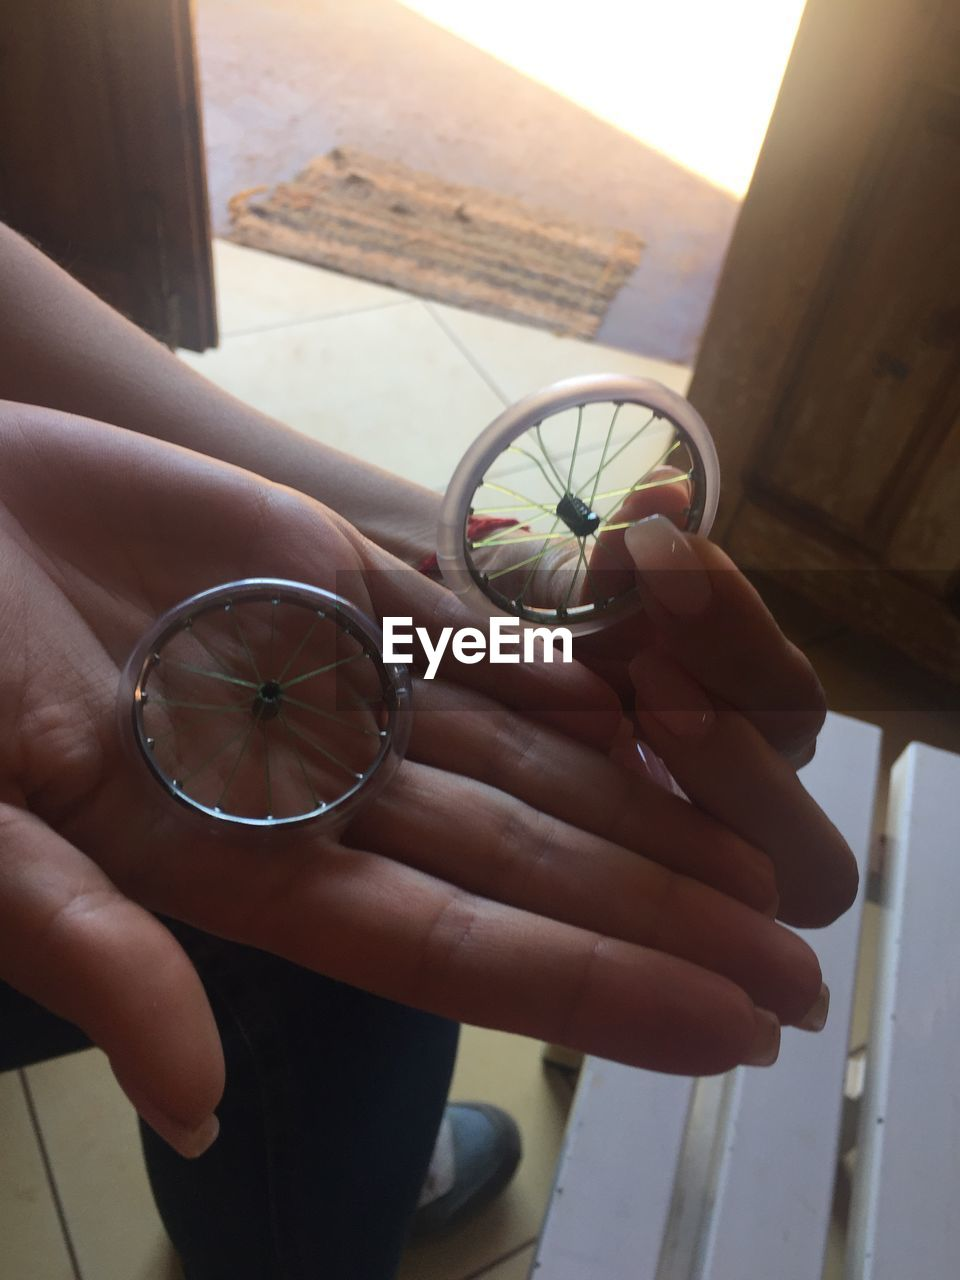 holding, human hand, hand, one person, human body part, real people, women, focus on foreground, lifestyles, nature, day, adult, plant, leisure activity, outdoors, window, glass - material, unrecognizable person, finger